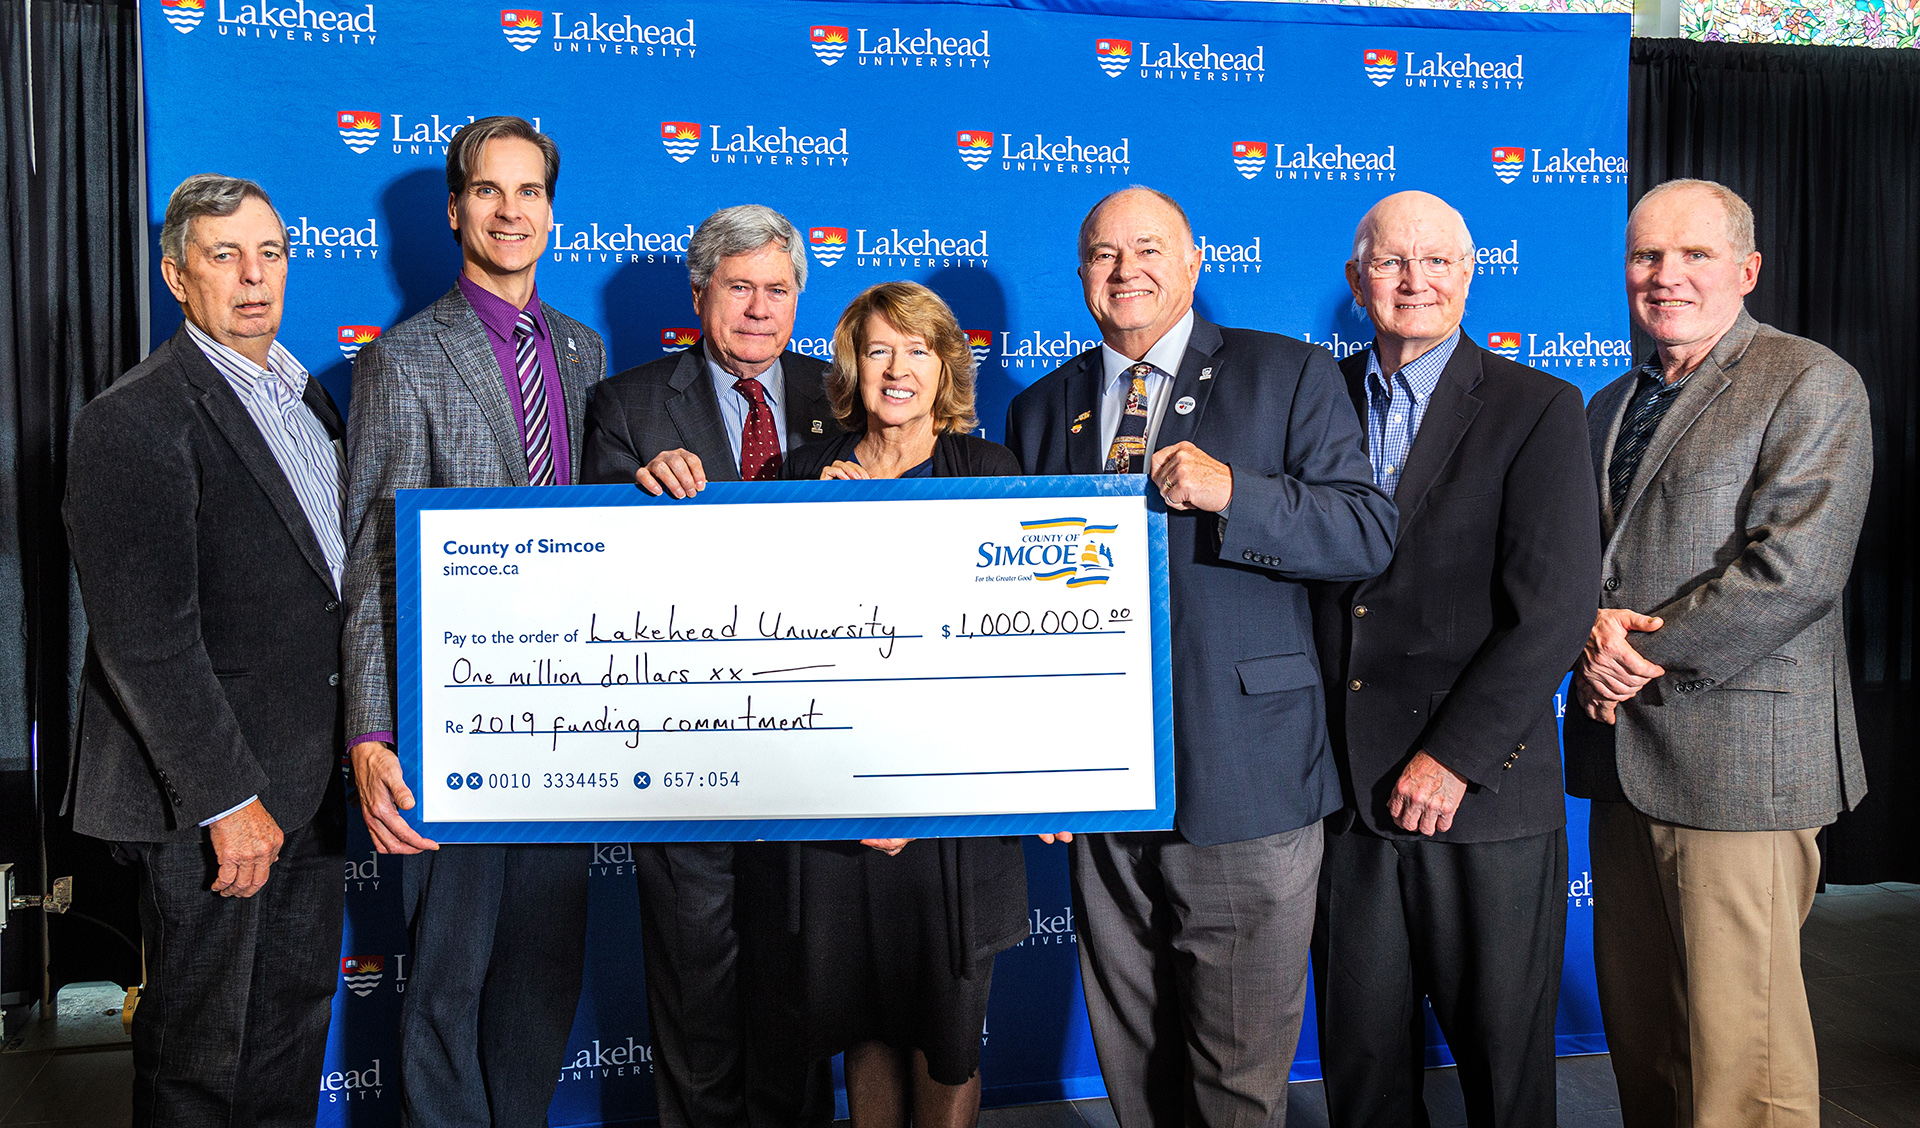 County of Simcoe Councillors presented Lakehead University with $-million gift